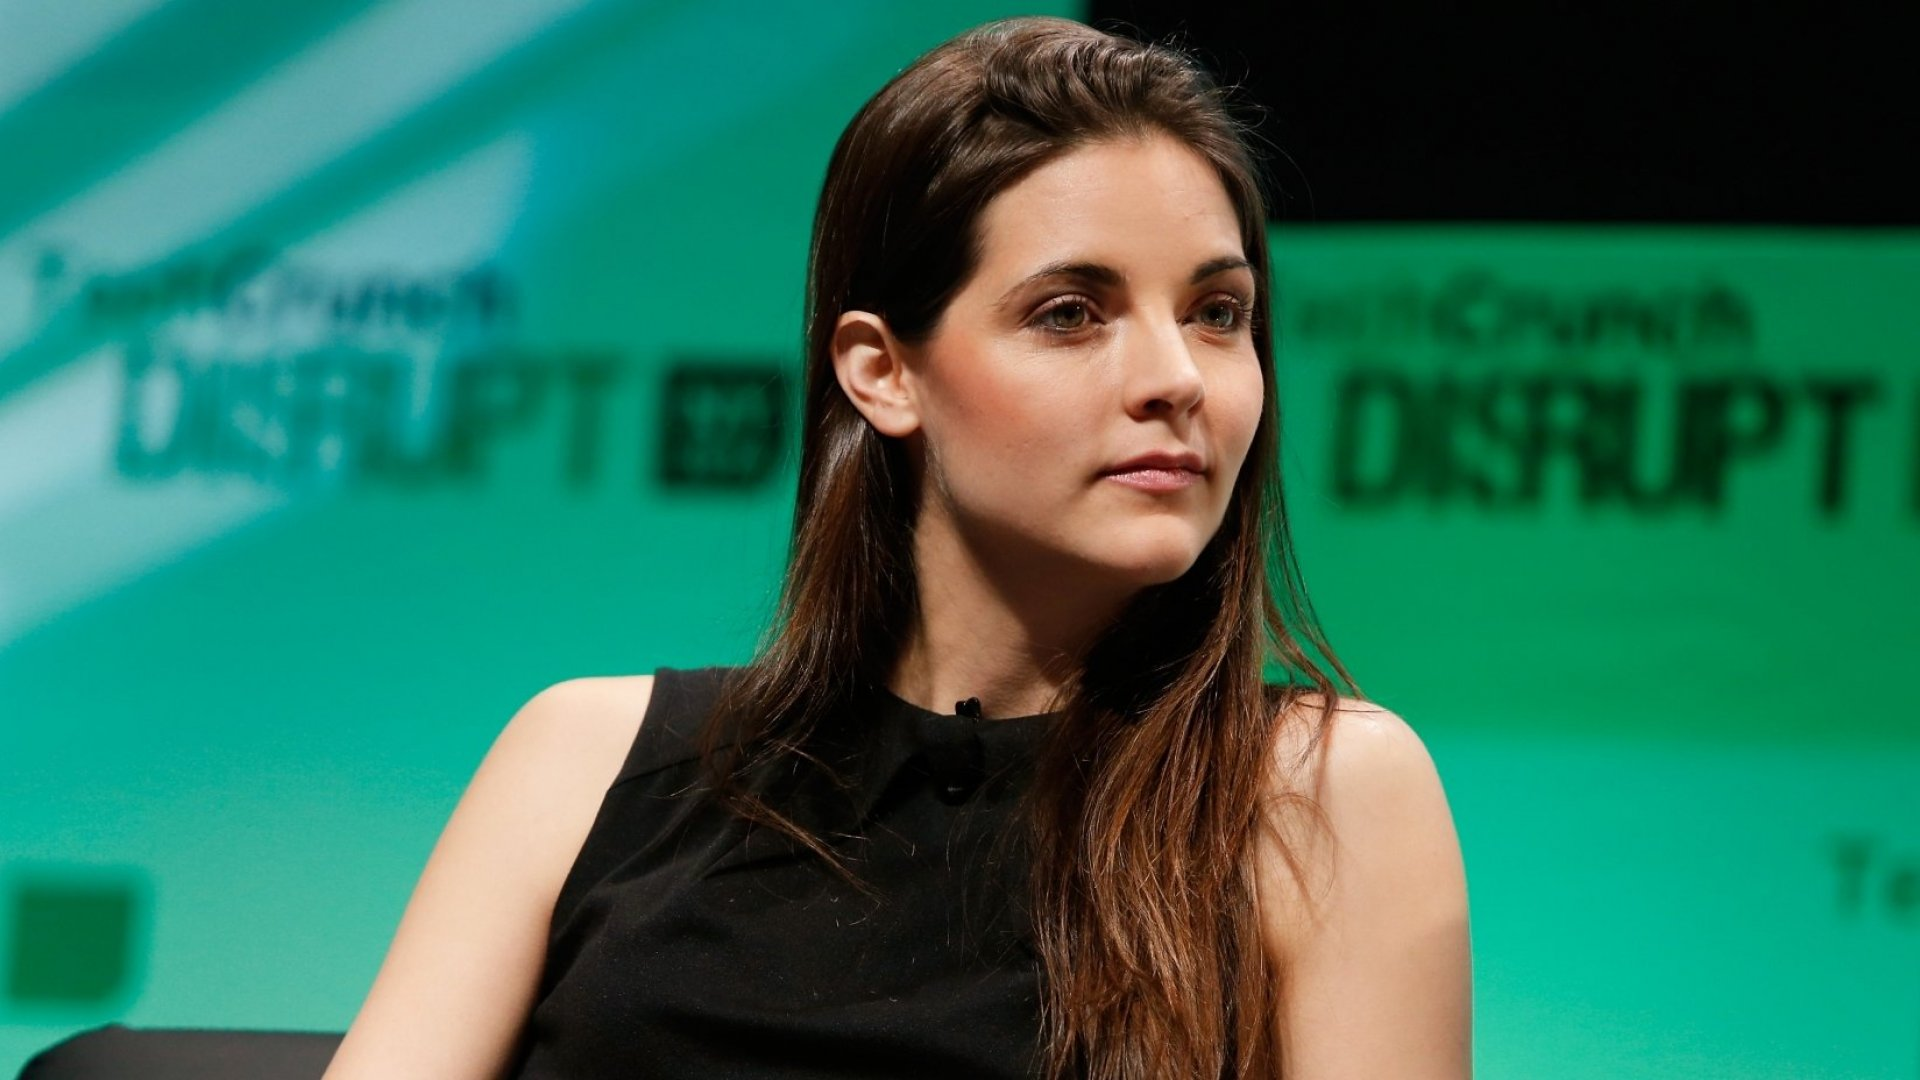 Kathryn Minshew, co-founder and CEO of The Muse